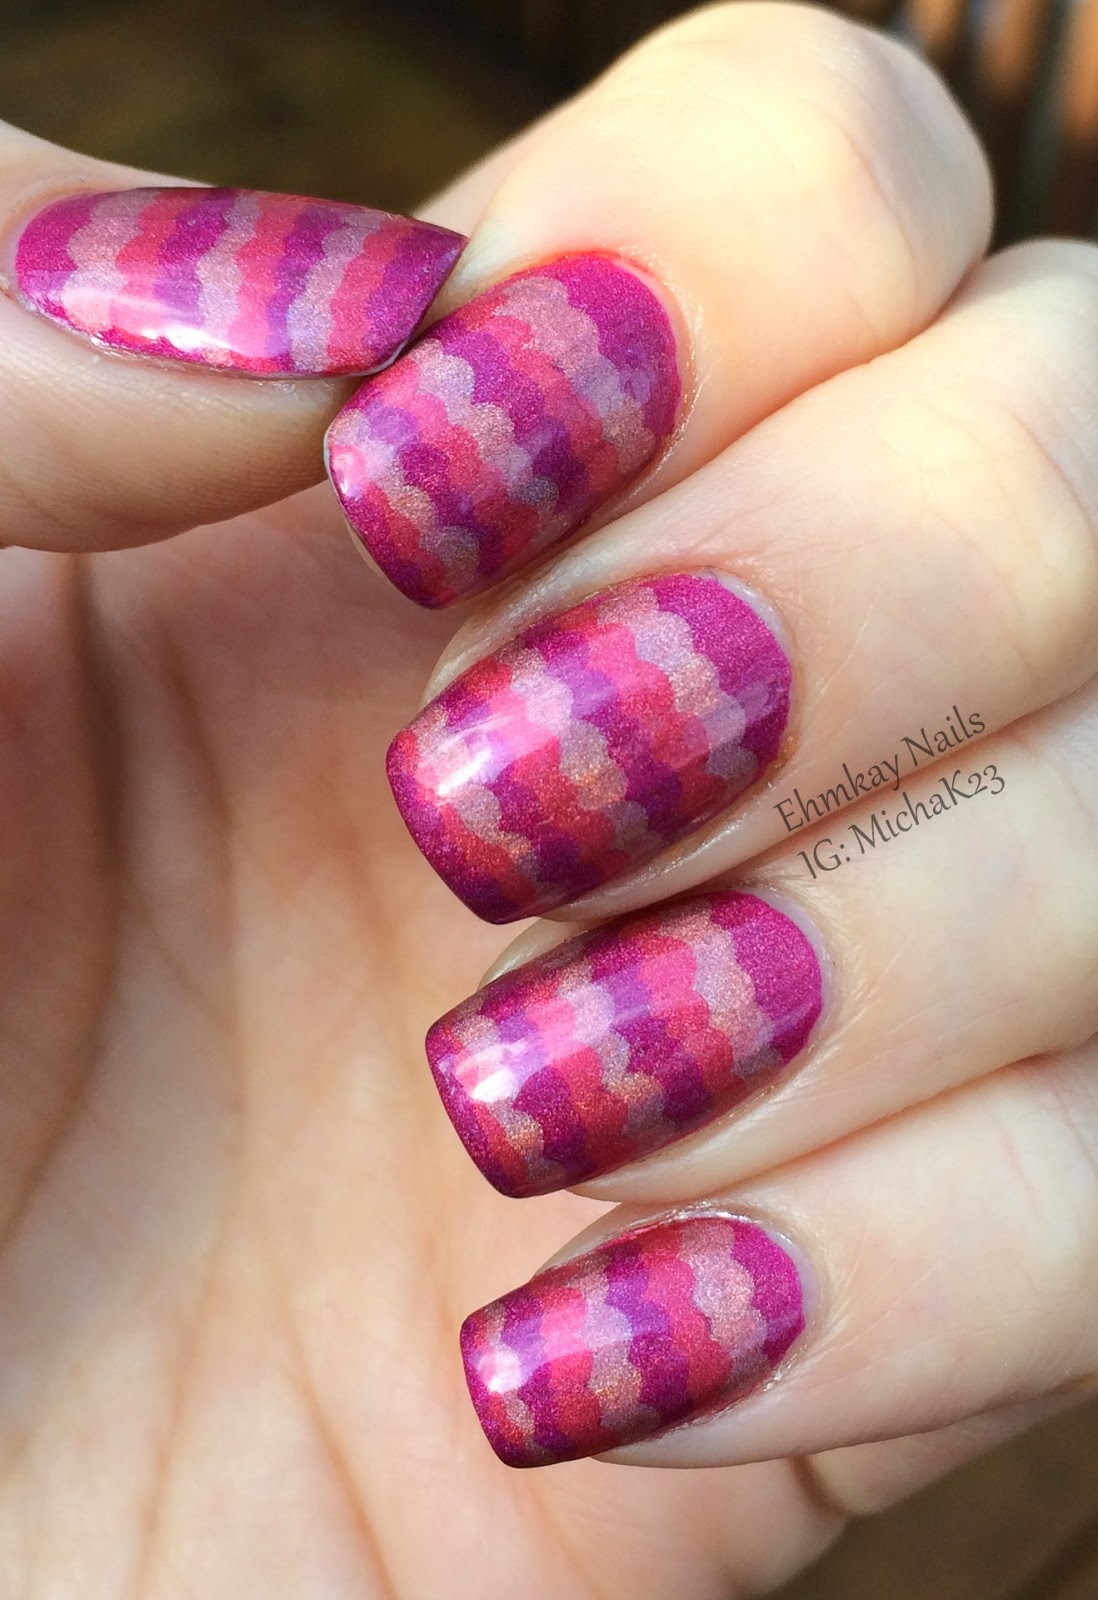 ehmkay nails: China Glaze OMG Holographic Ruffle Nail Art